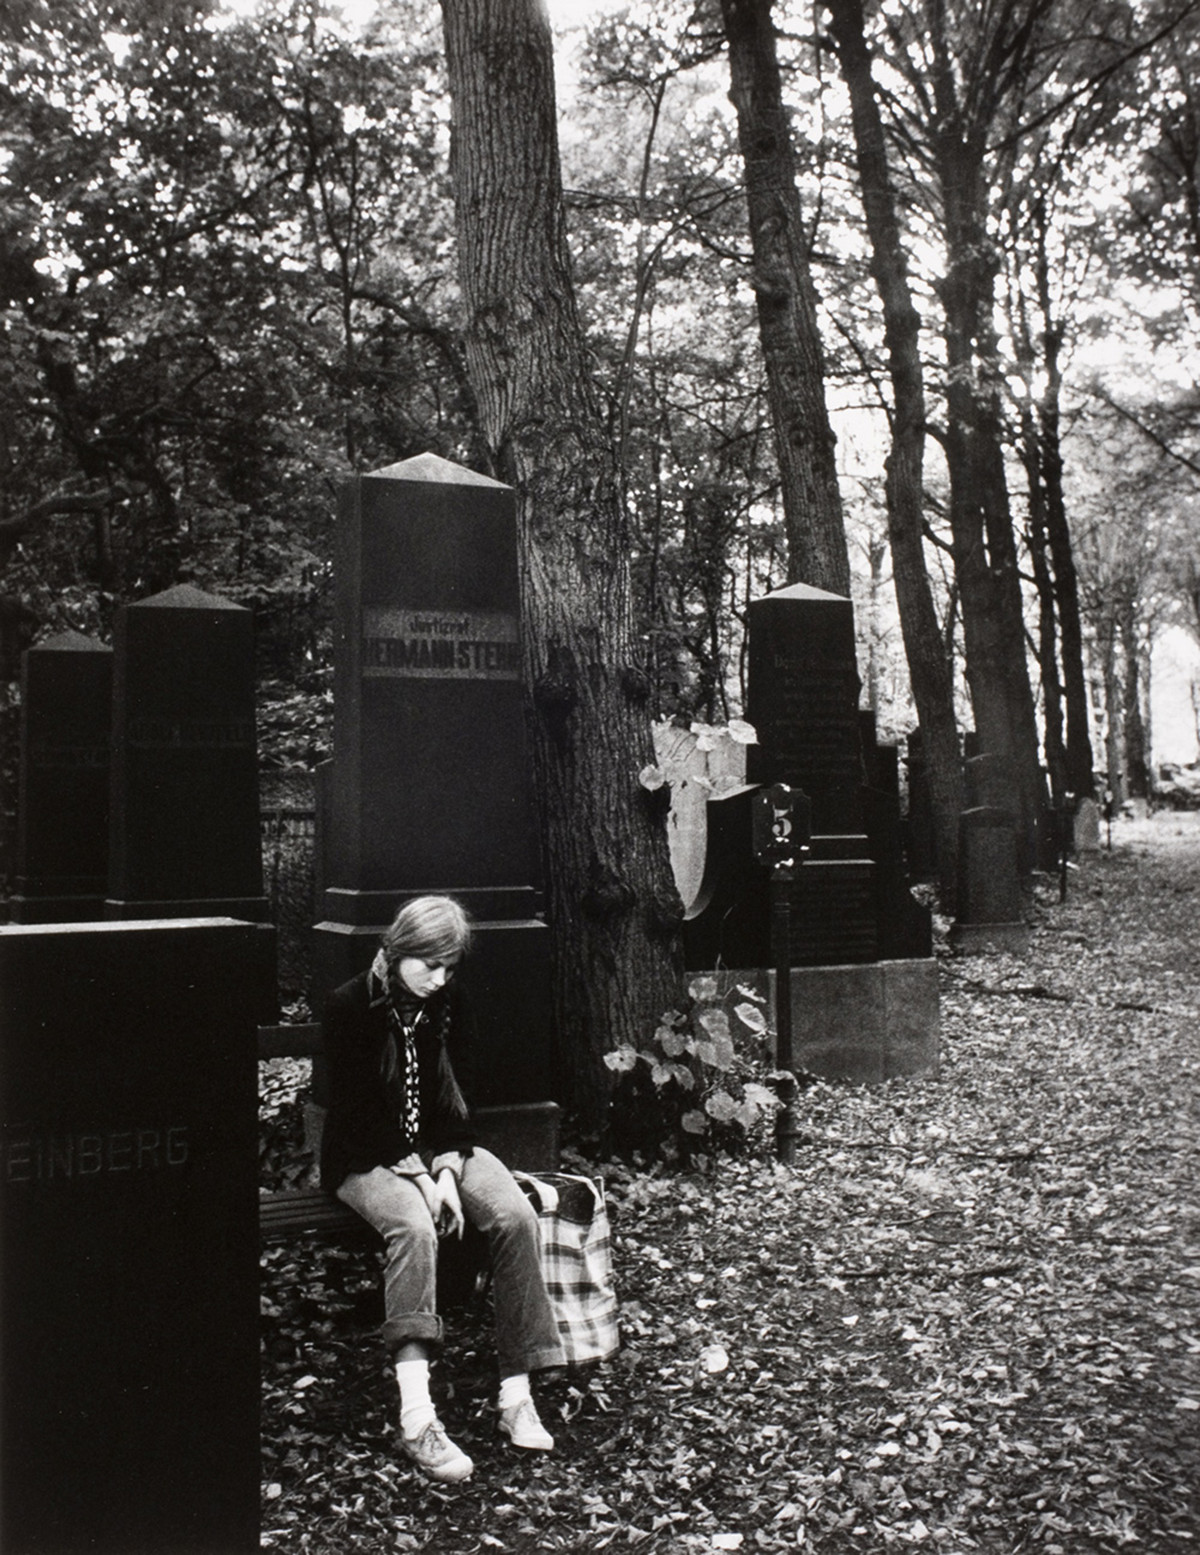 A girl at the Weissensee Jewish cemetery in East Berlin, 1979.